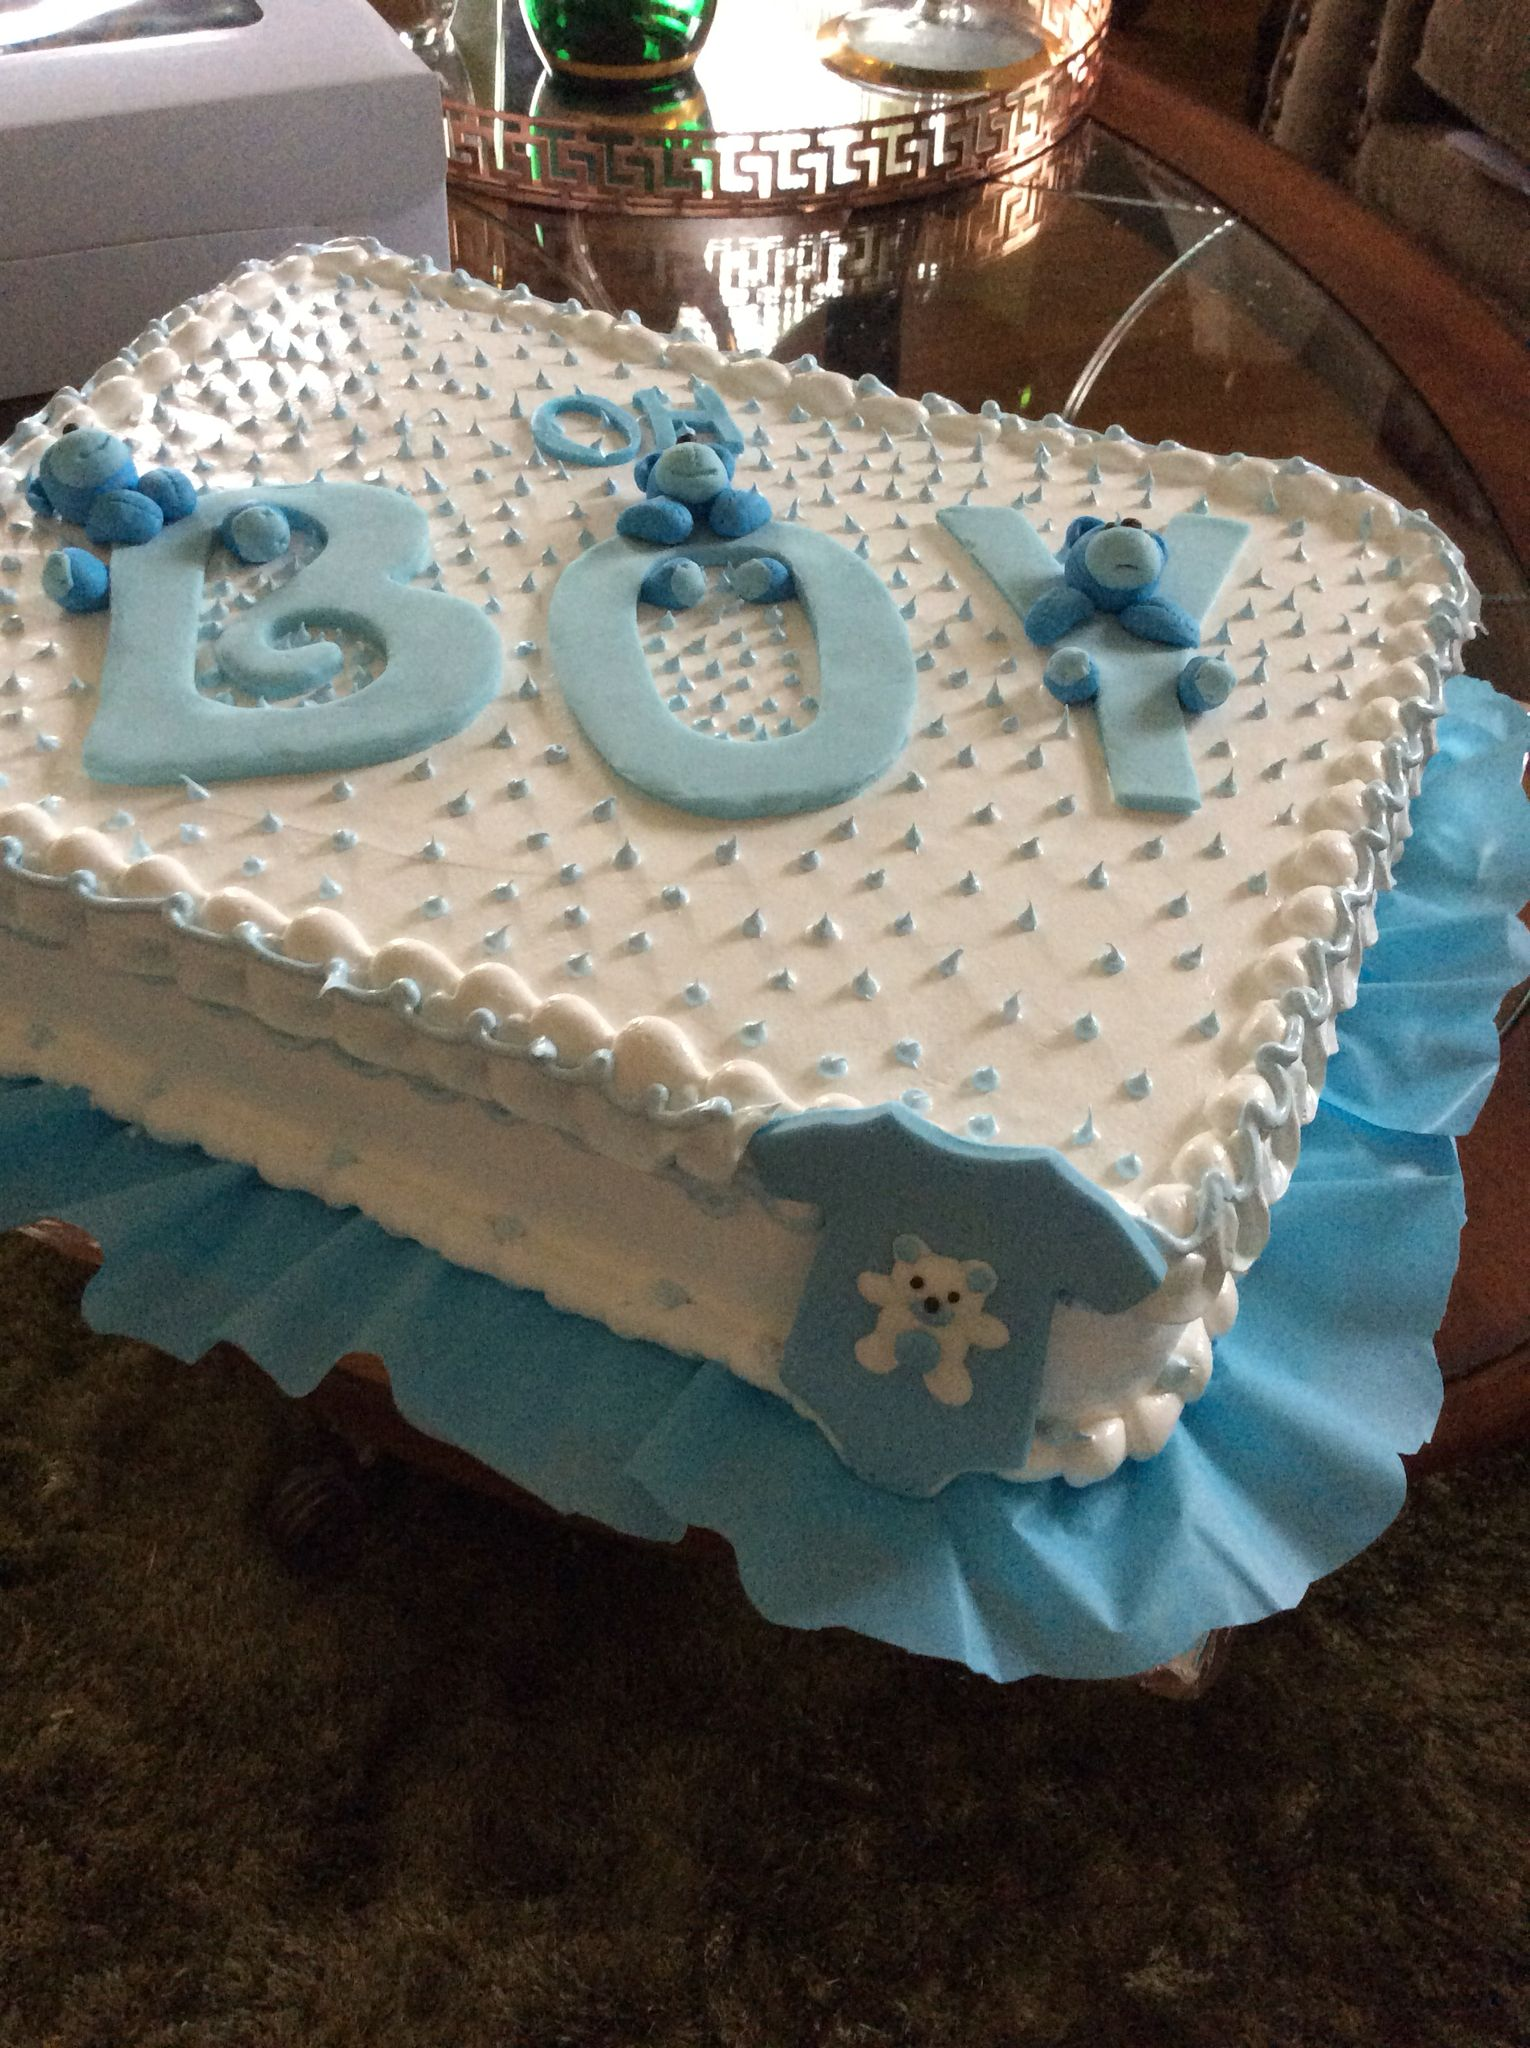 Pasteles Para Baby Shower Nino : pasteles, shower, Cindy, Roach, Decoración, Shower, Cakes, Boys,, Designs,, Sheet